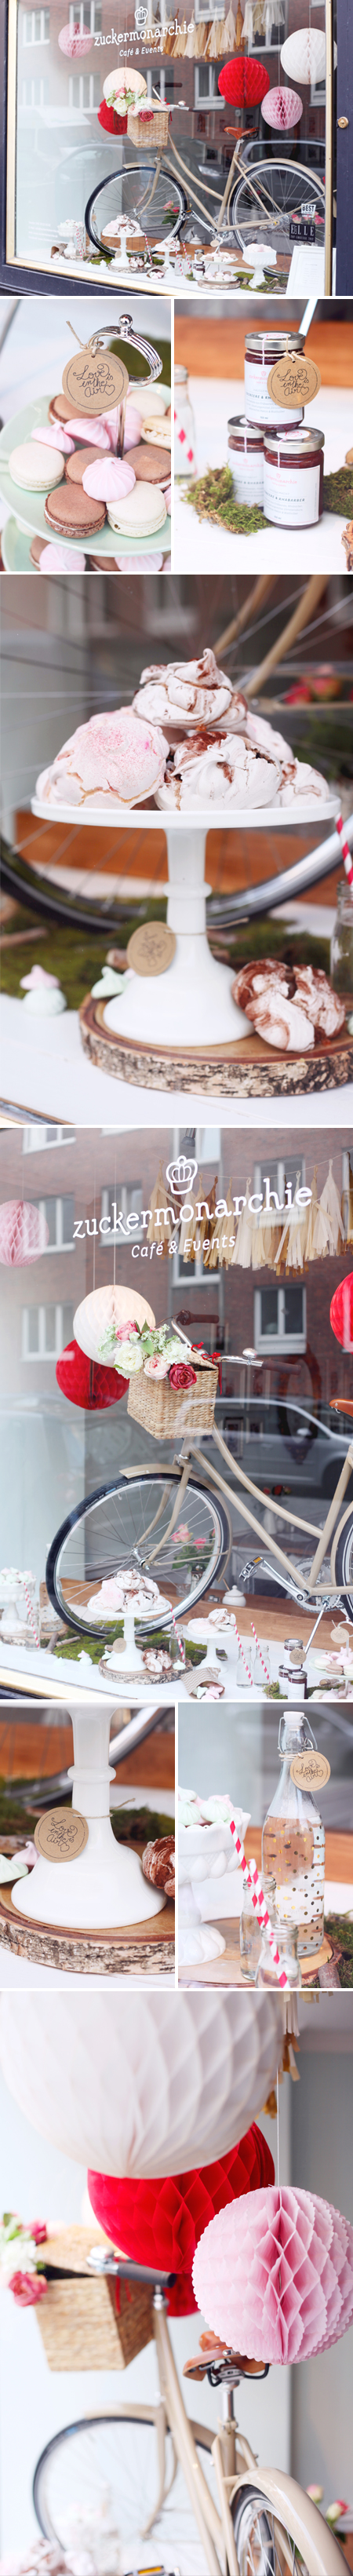 IntoTheWoods_Schaufenster_Zuckermonarchie_Hamburg